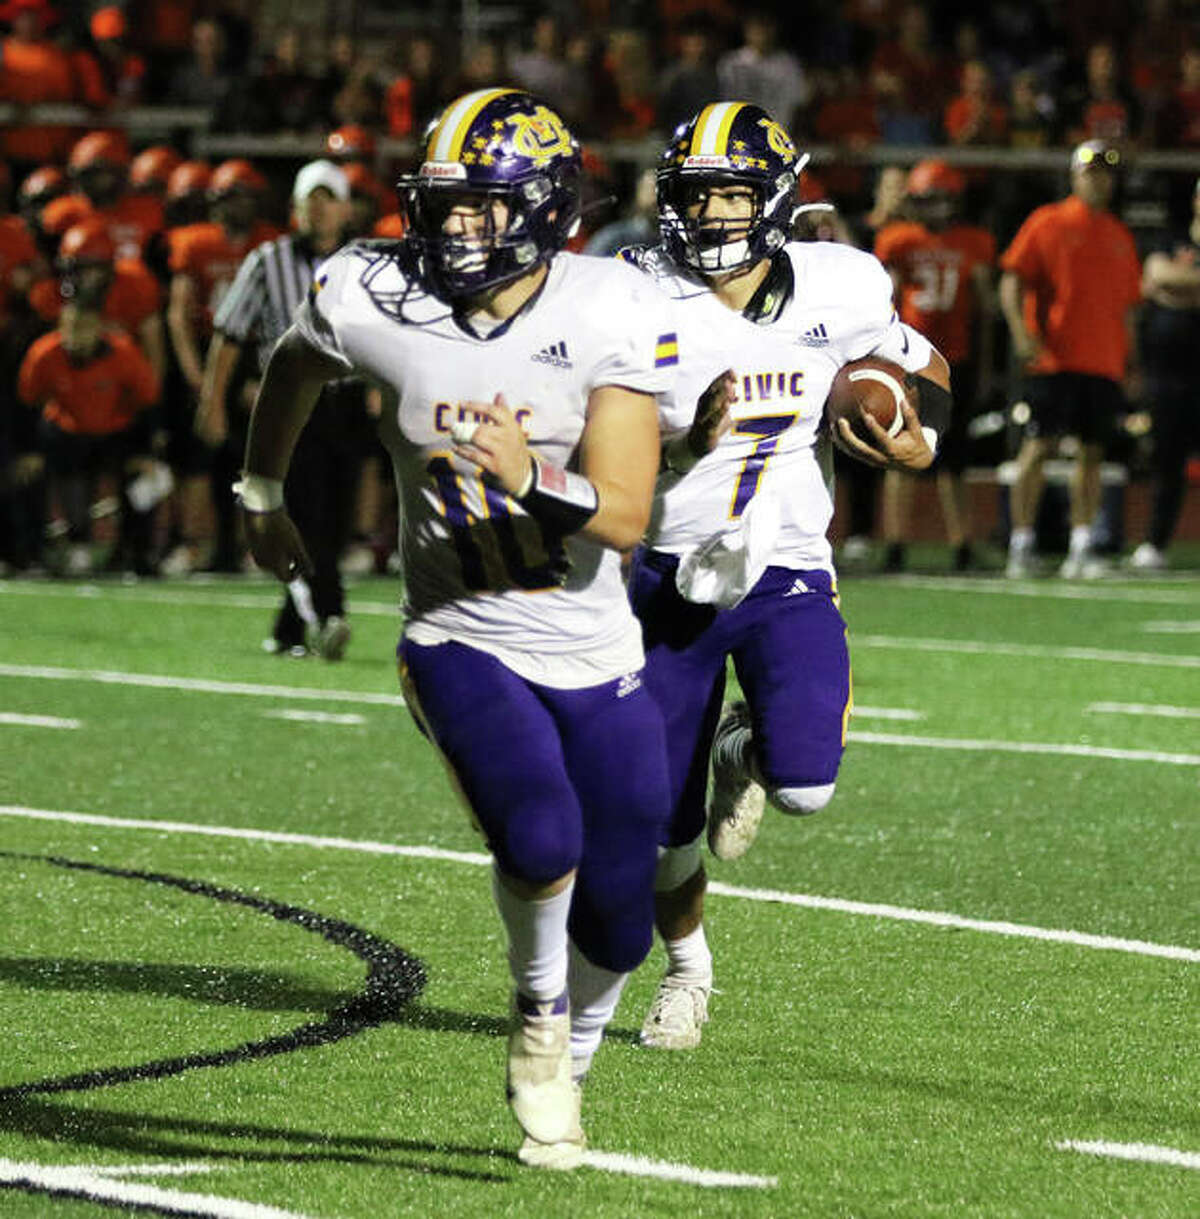 CM running back Nick Brousseau (10) leads the way for quarterback Bryer Arview's 6-yard run in OT on Friday night in Waterloo.